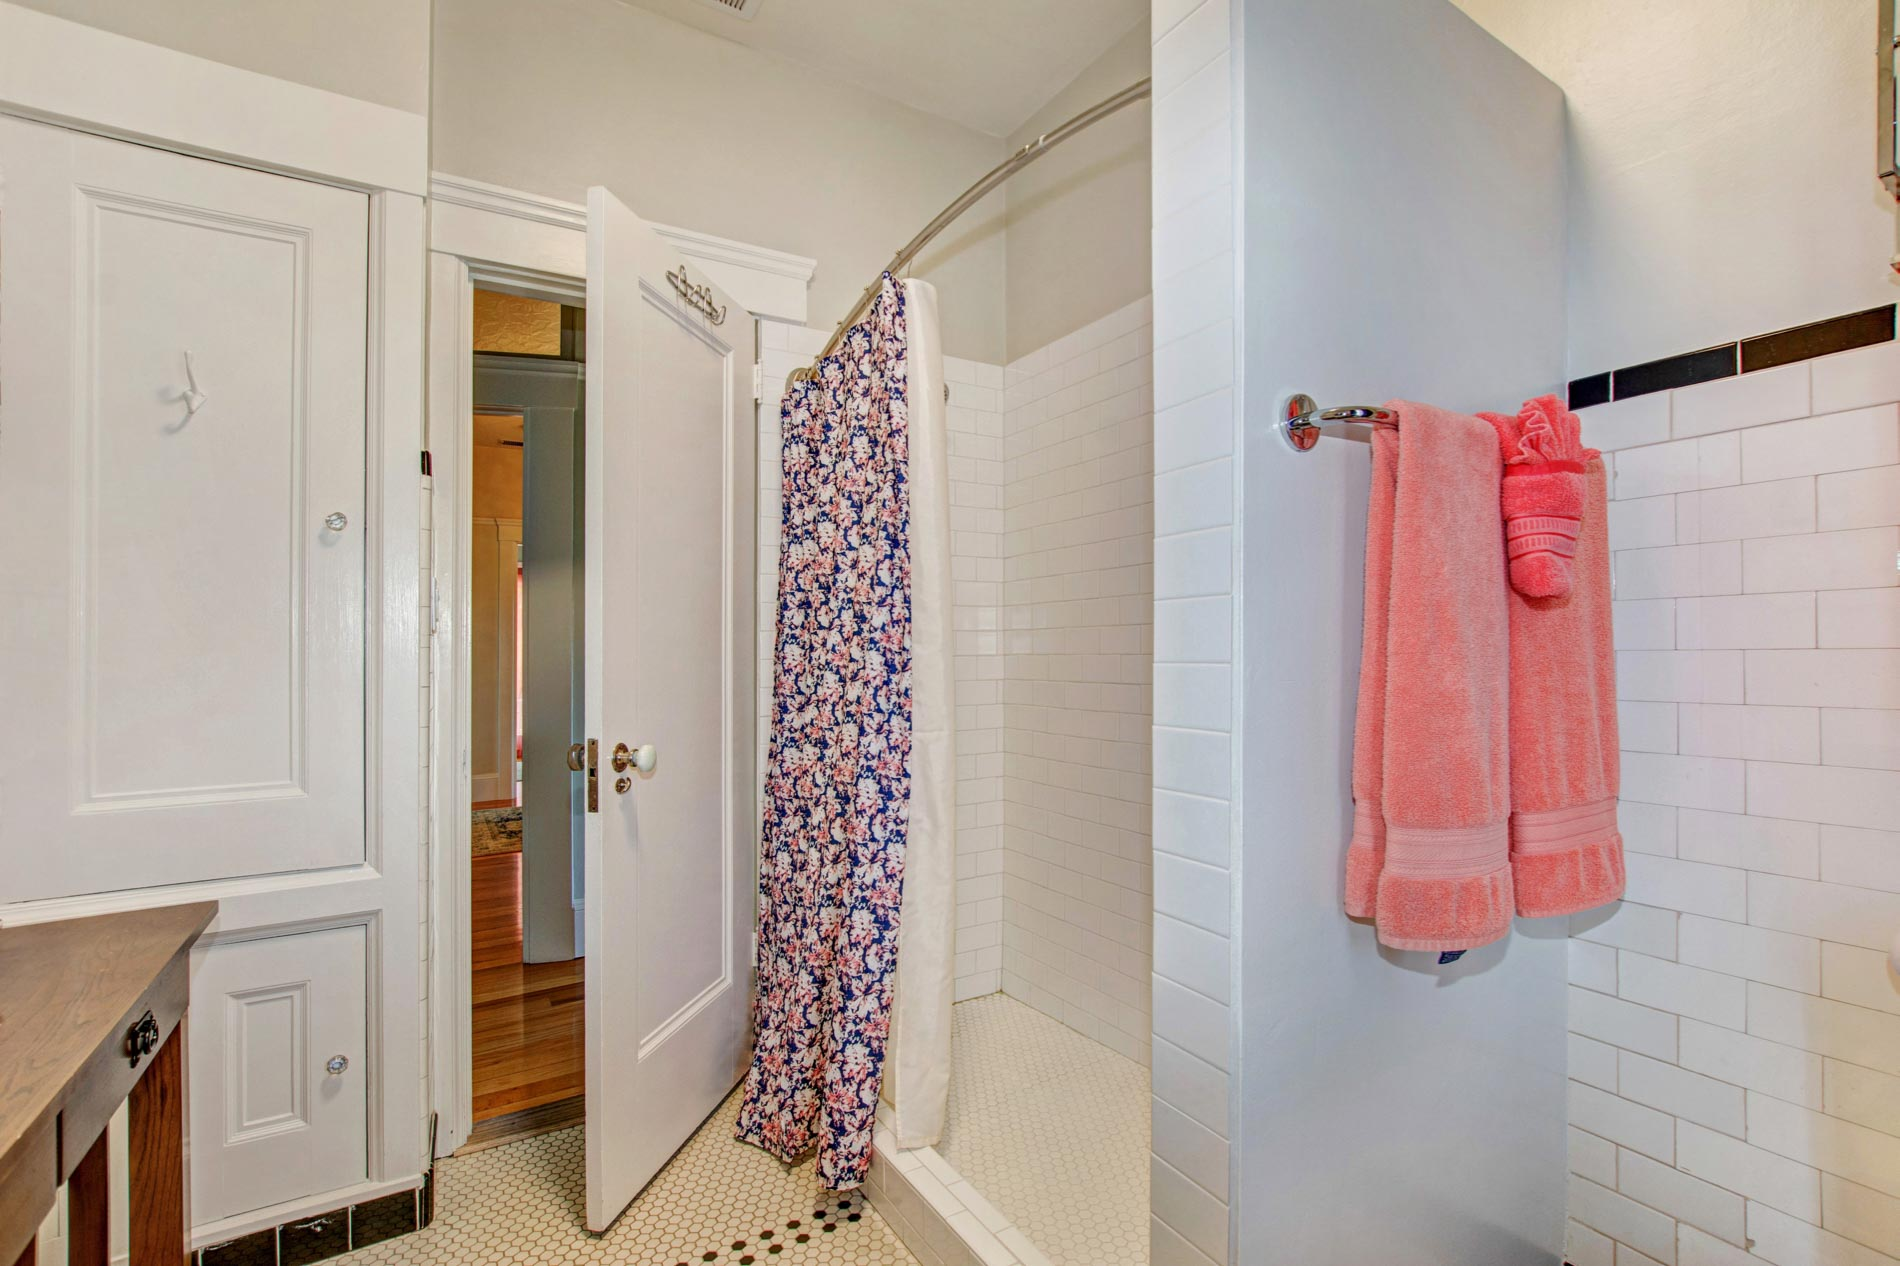 Casa Bella bathroom and shower with pink towels